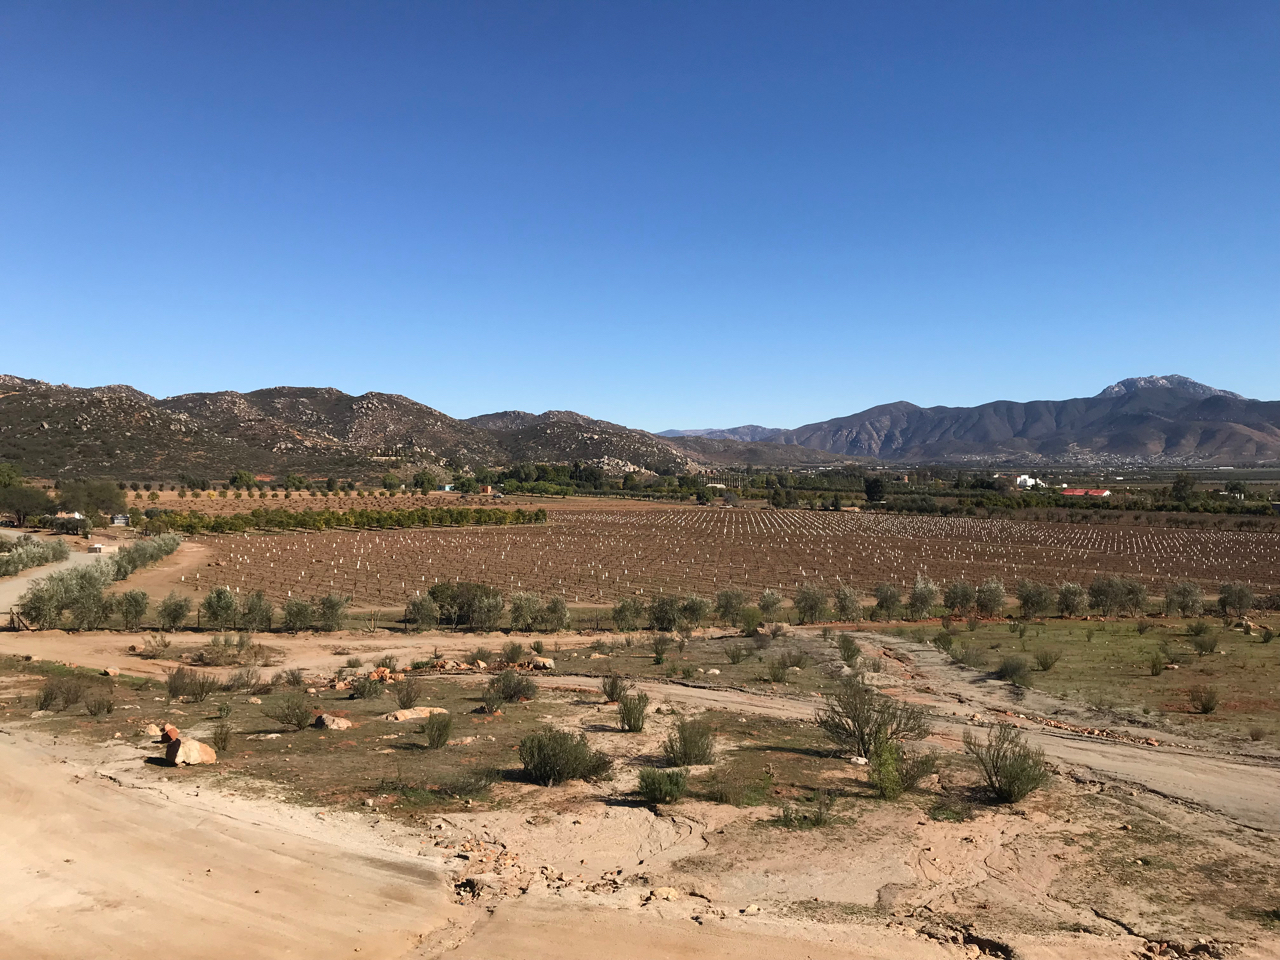 There is a tremendous amount of vineyard expansion in process in Valle de Guadalupe (the white dots are protective cardboard sleeves around each young vine).